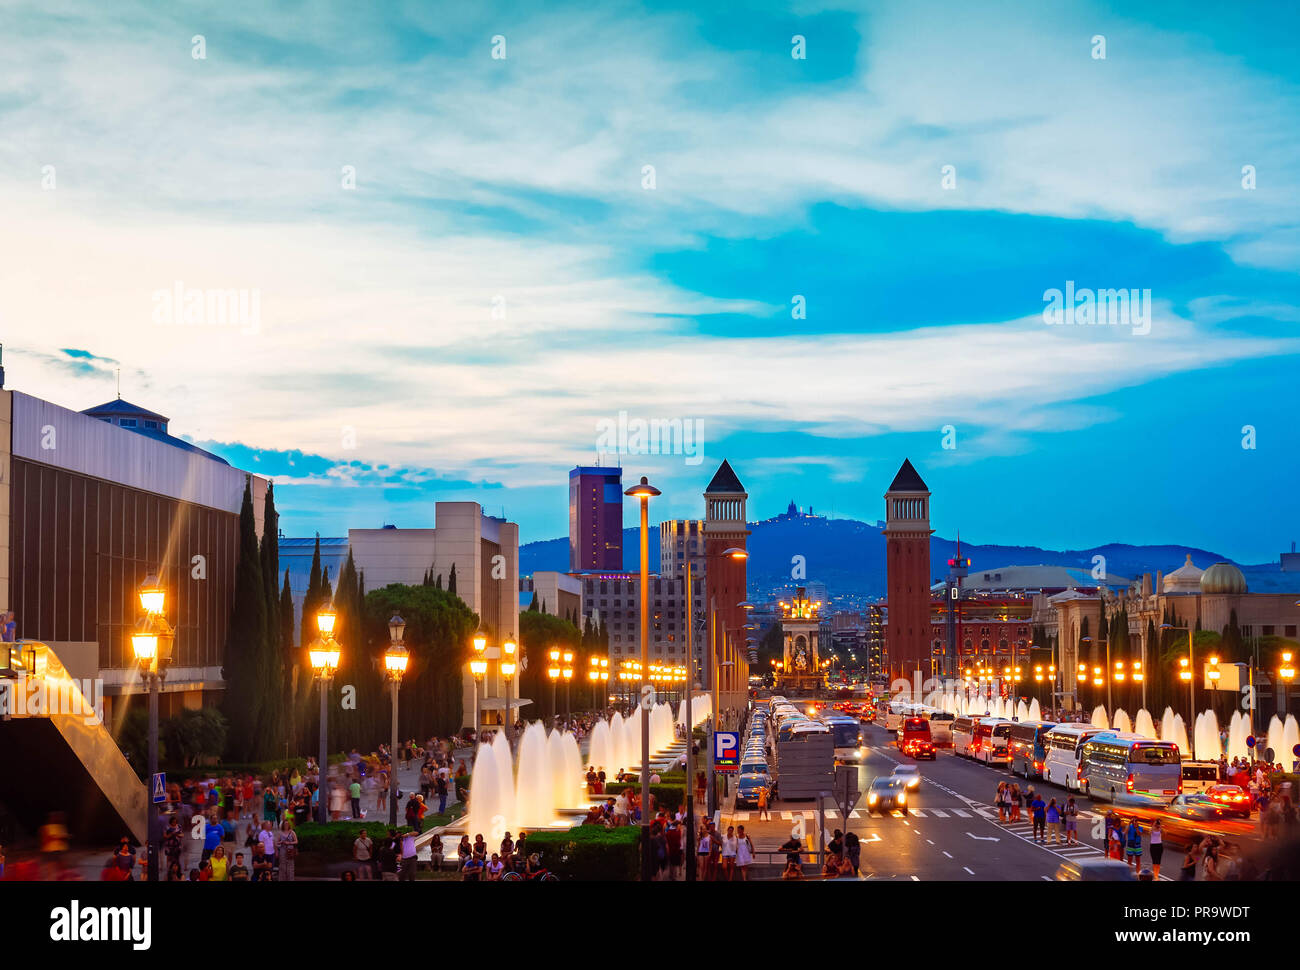 square of Spain with venetian towers, Barcelona - Stock Image